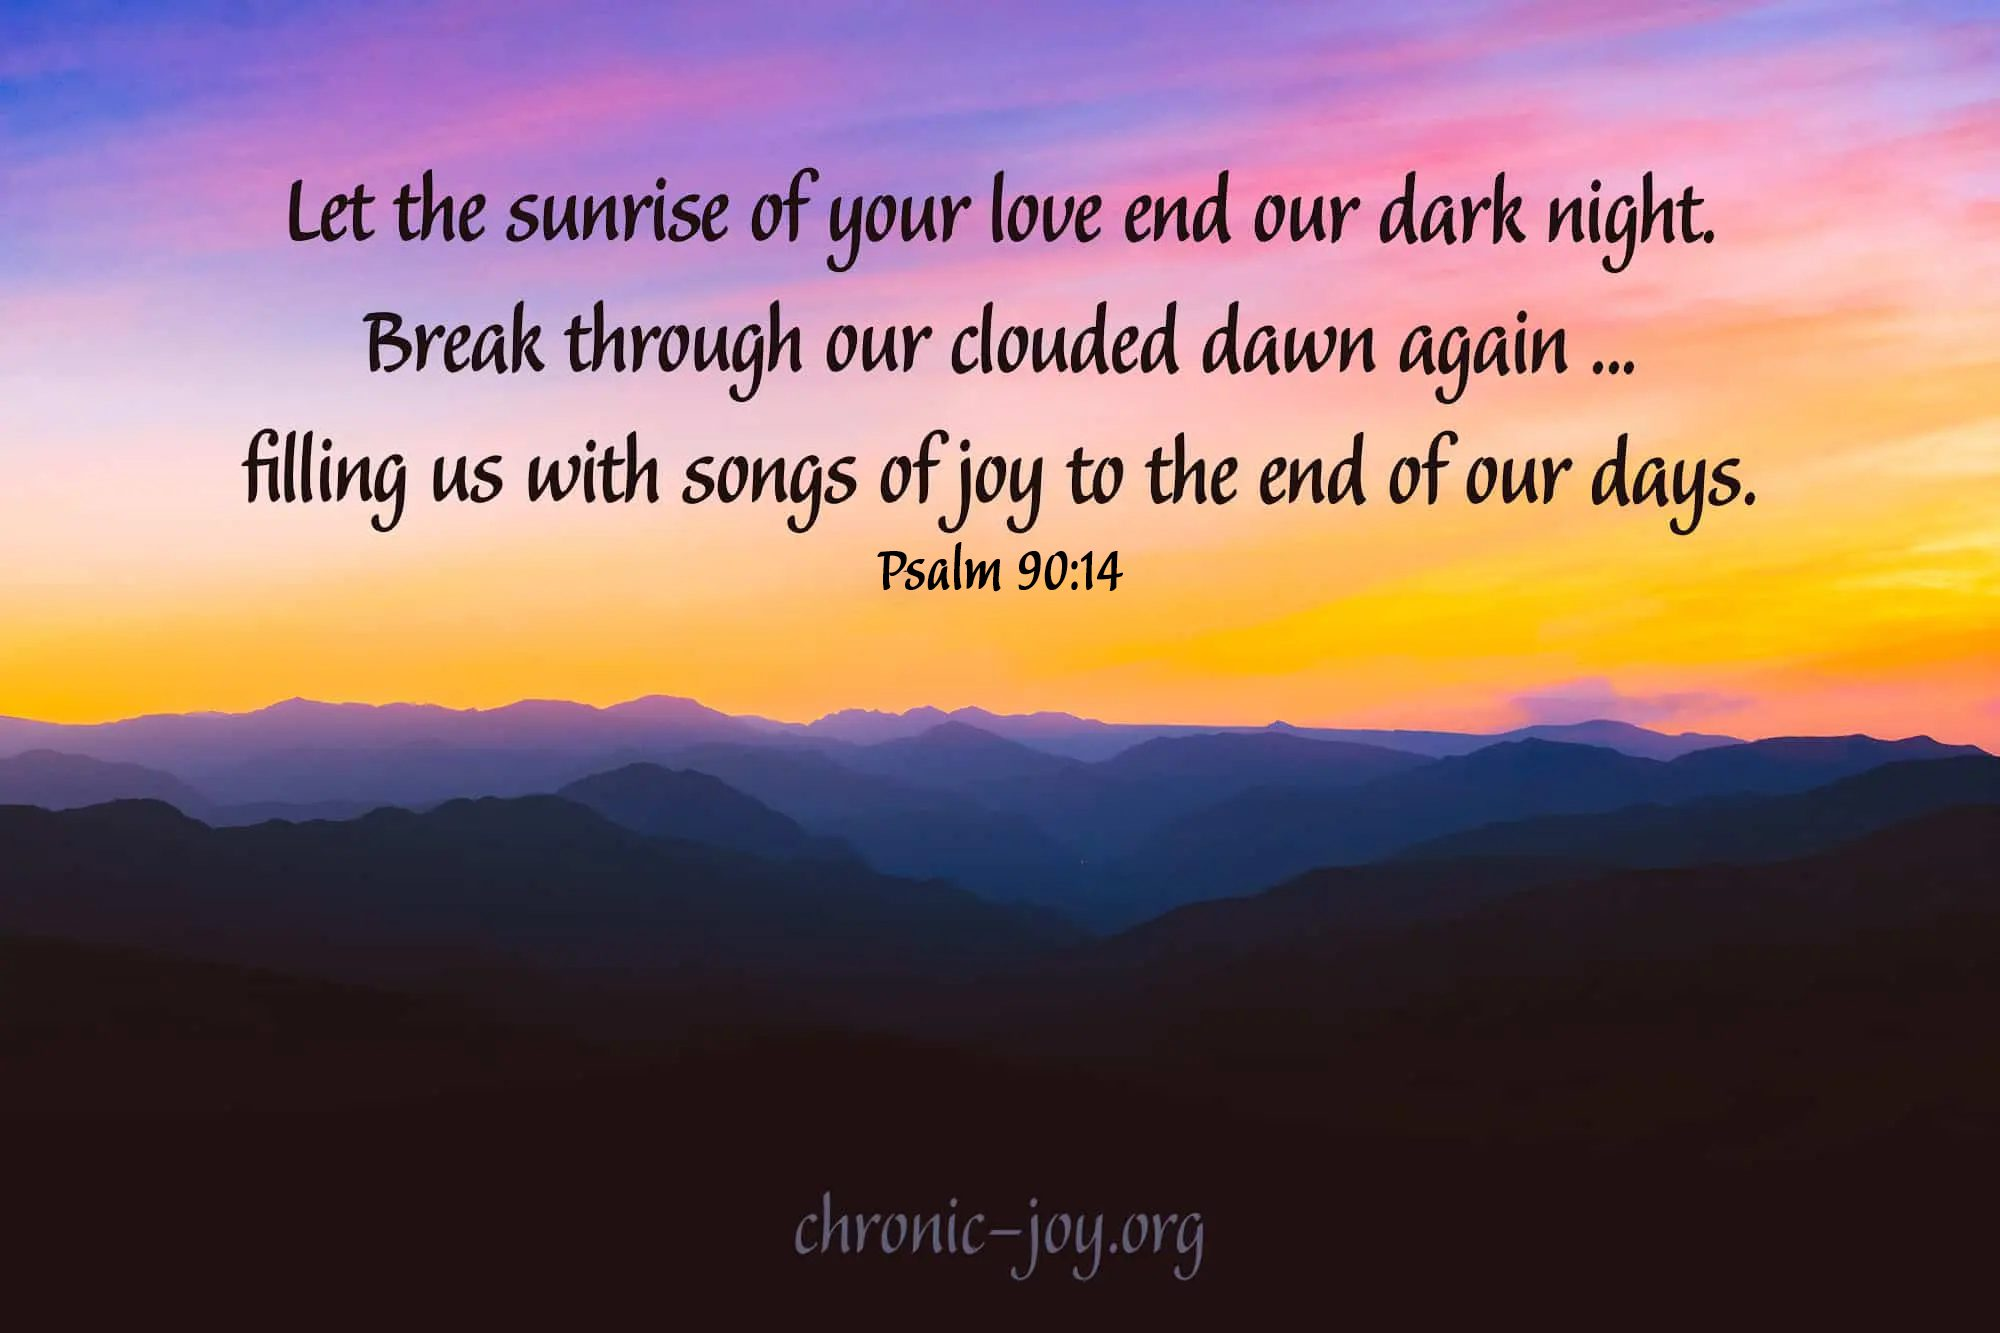 Breaking Through My Clouded Dawn with God's Light